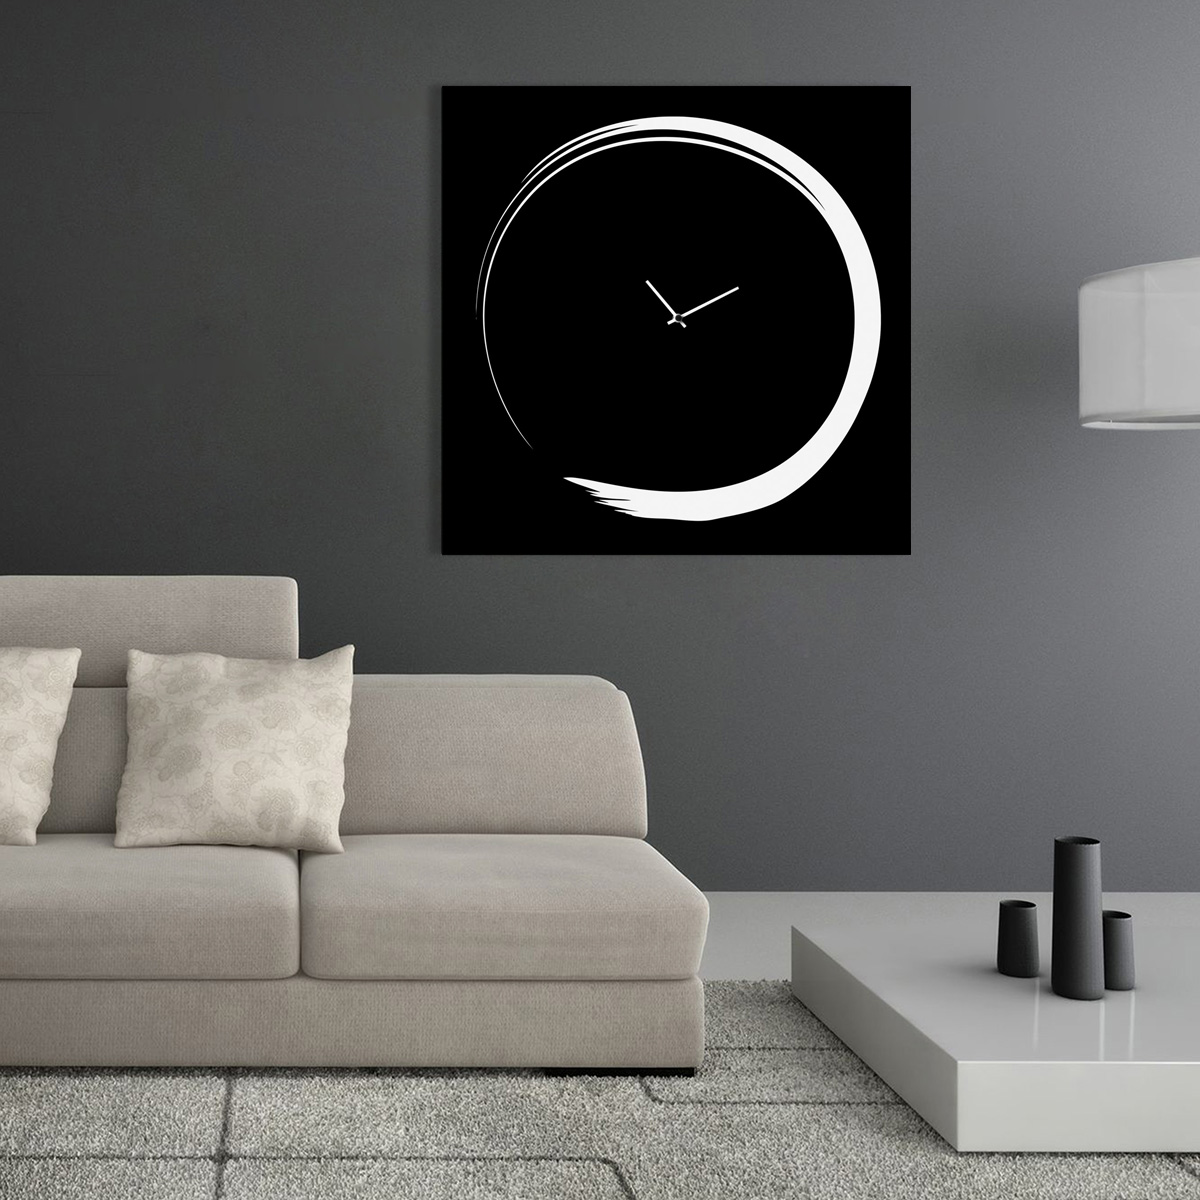 S enso modern big wall clock italian design designobject for Complementi arredo design